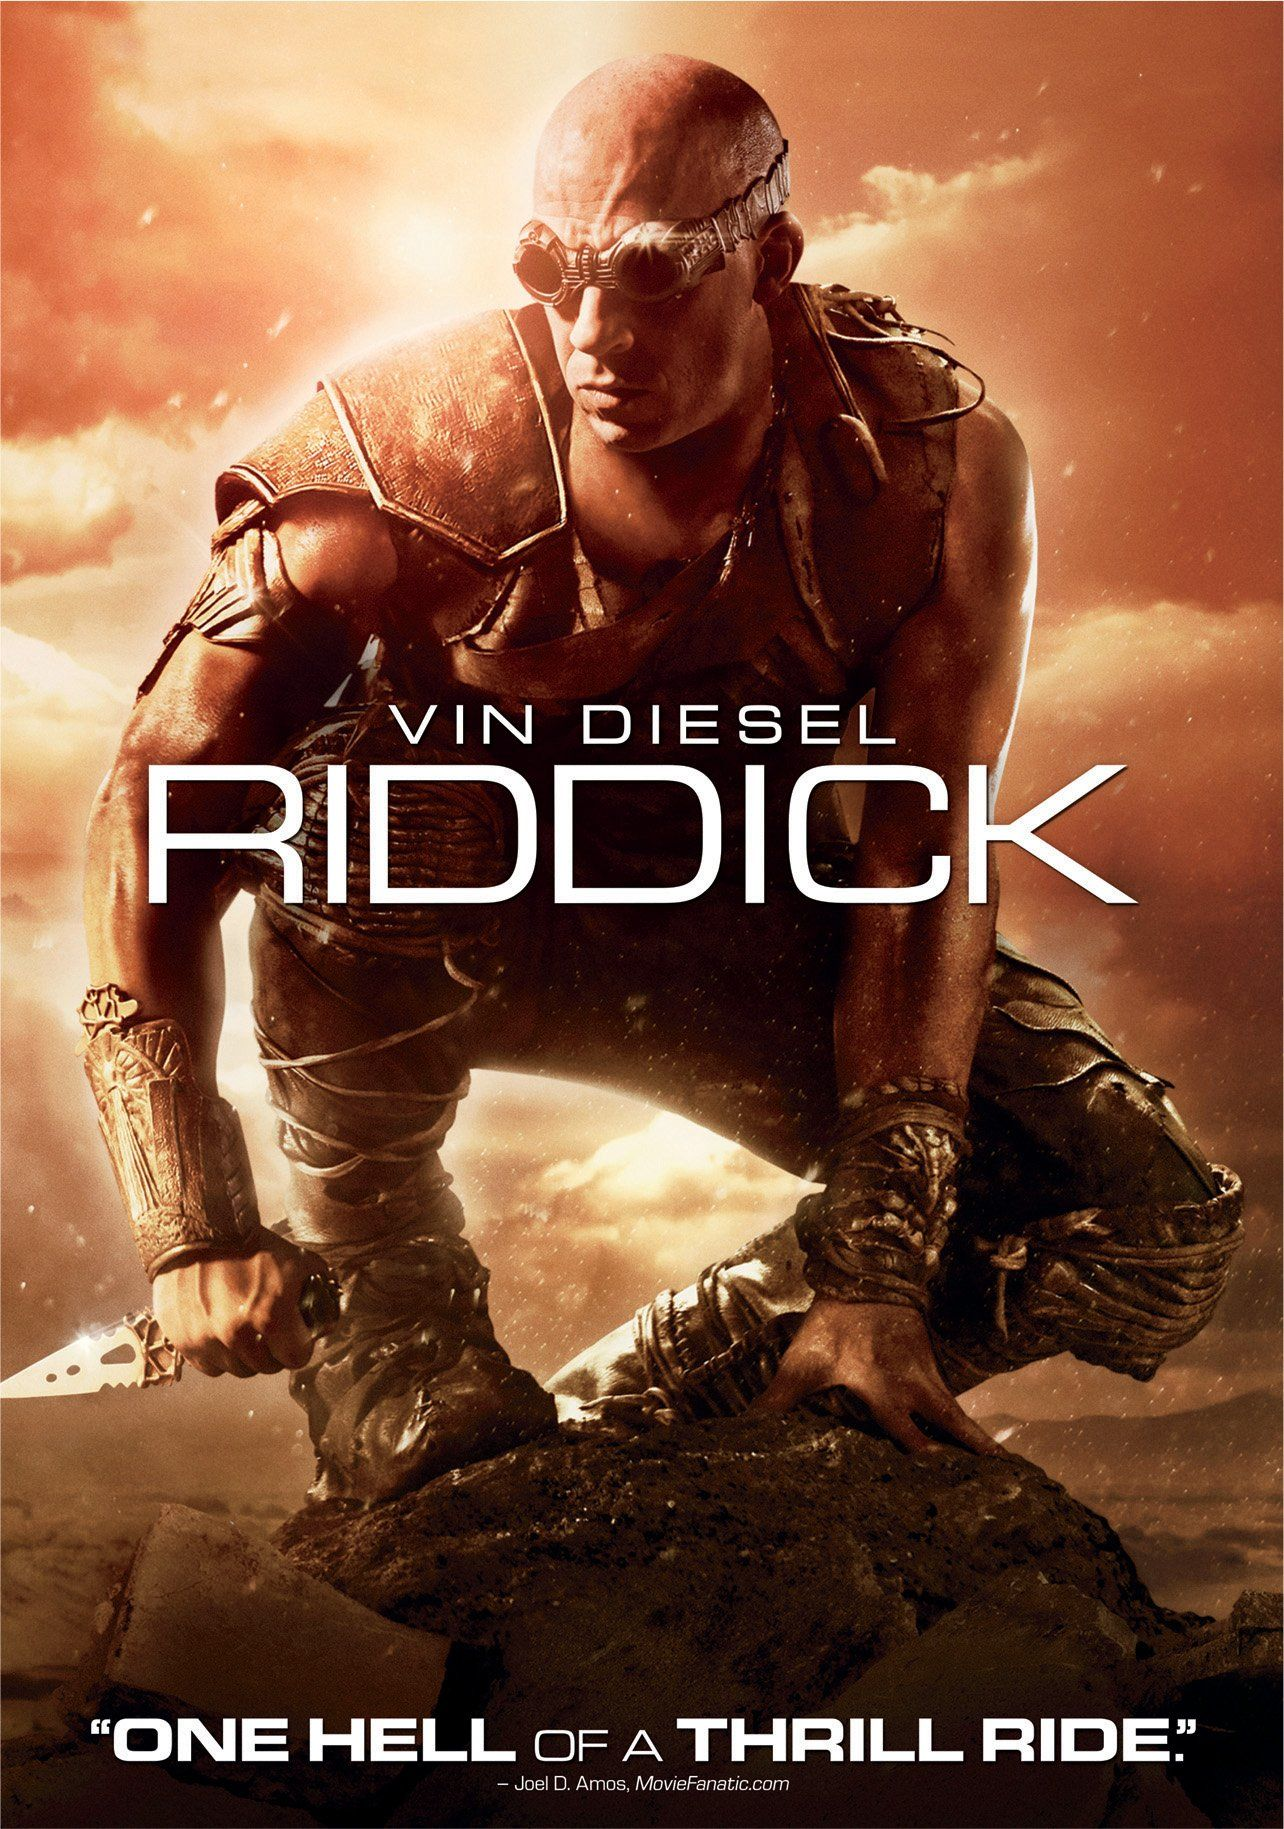 Robot Check | Vin diesel, Free movies online, Streaming movies